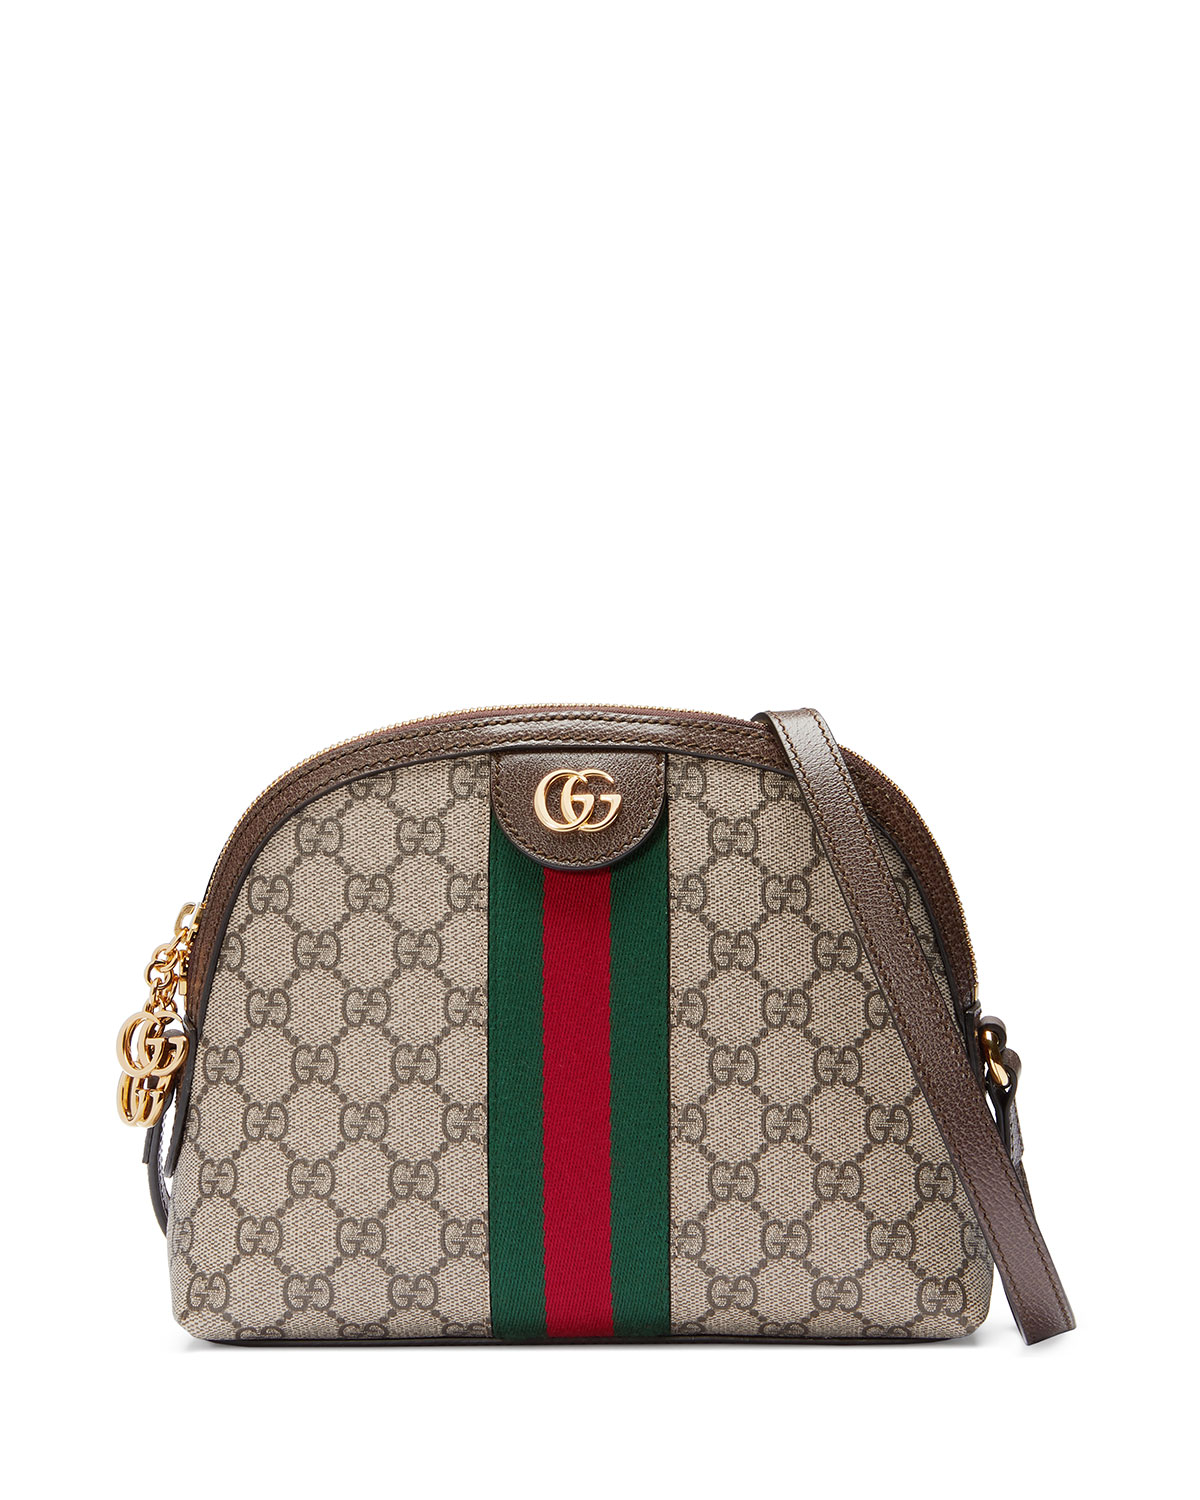 ad6a0b2e910 Quick Look. Gucci · Linea Dragoni GG Supreme Canvas Small Shoulder Bag